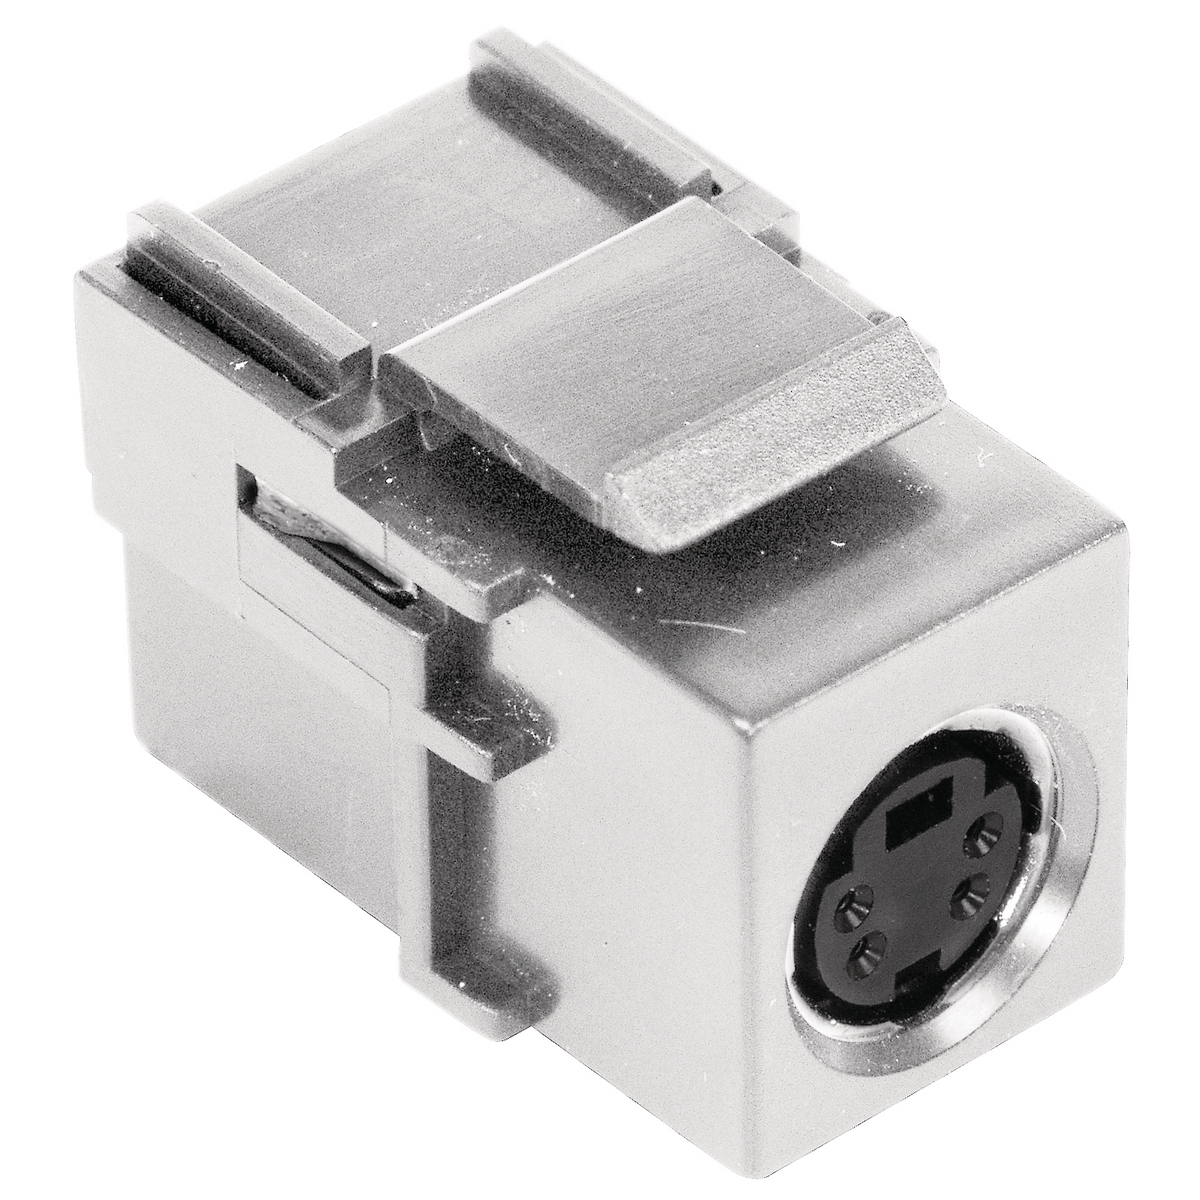 Hubbell Premise Wiring Products, Snap-Fit, S-Video Connector, Female toFemale, Office White